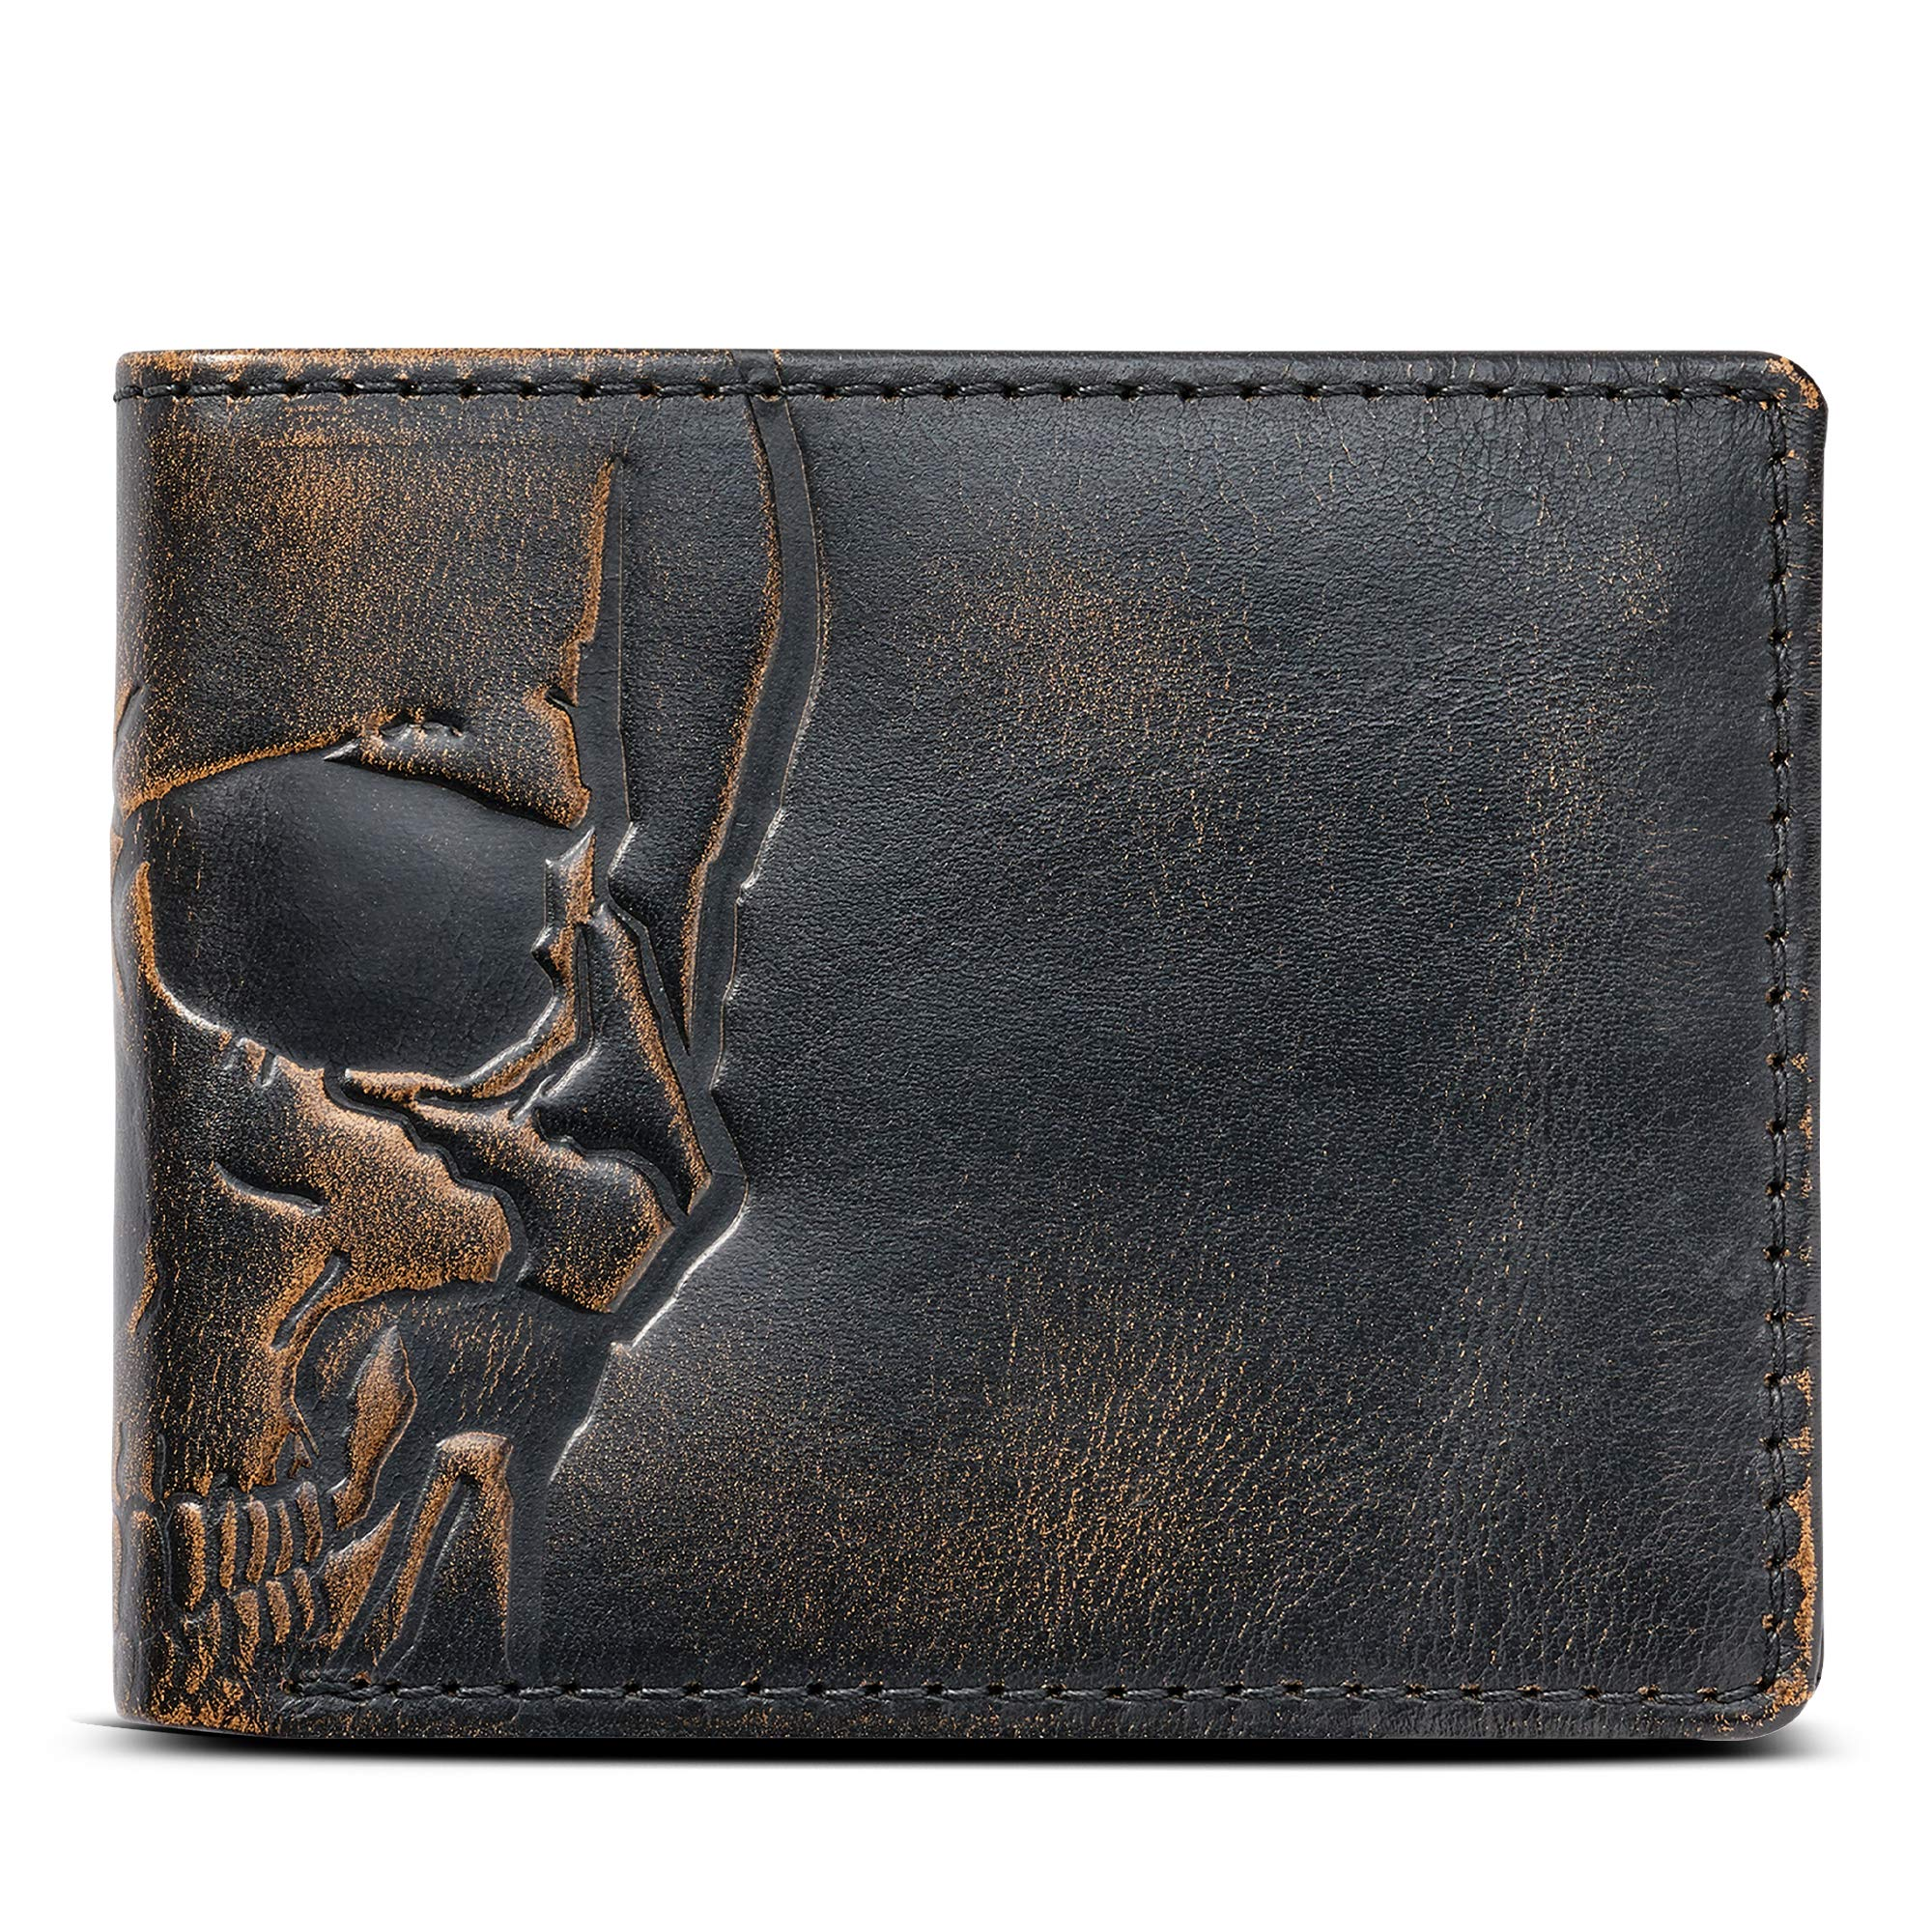 House of Jack Co. SKULL Wallet-Double ID Bifold-Full Grain Mens Leather Wallet-Multi Card Capacity